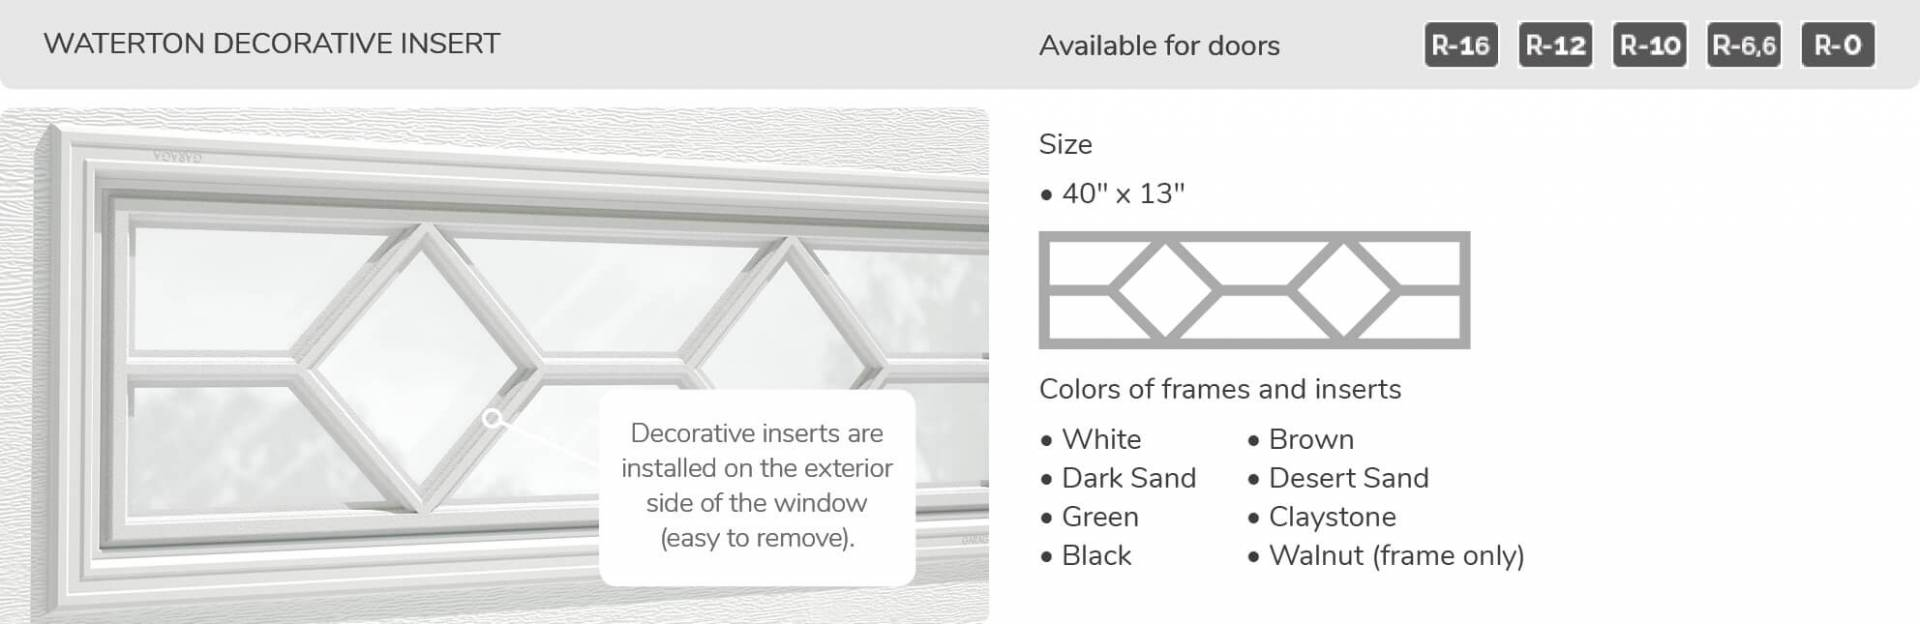 Waterton Decorative Insert, 40' x 13', available for doors R-16, R-12, R-10, R-6,6 and R-0